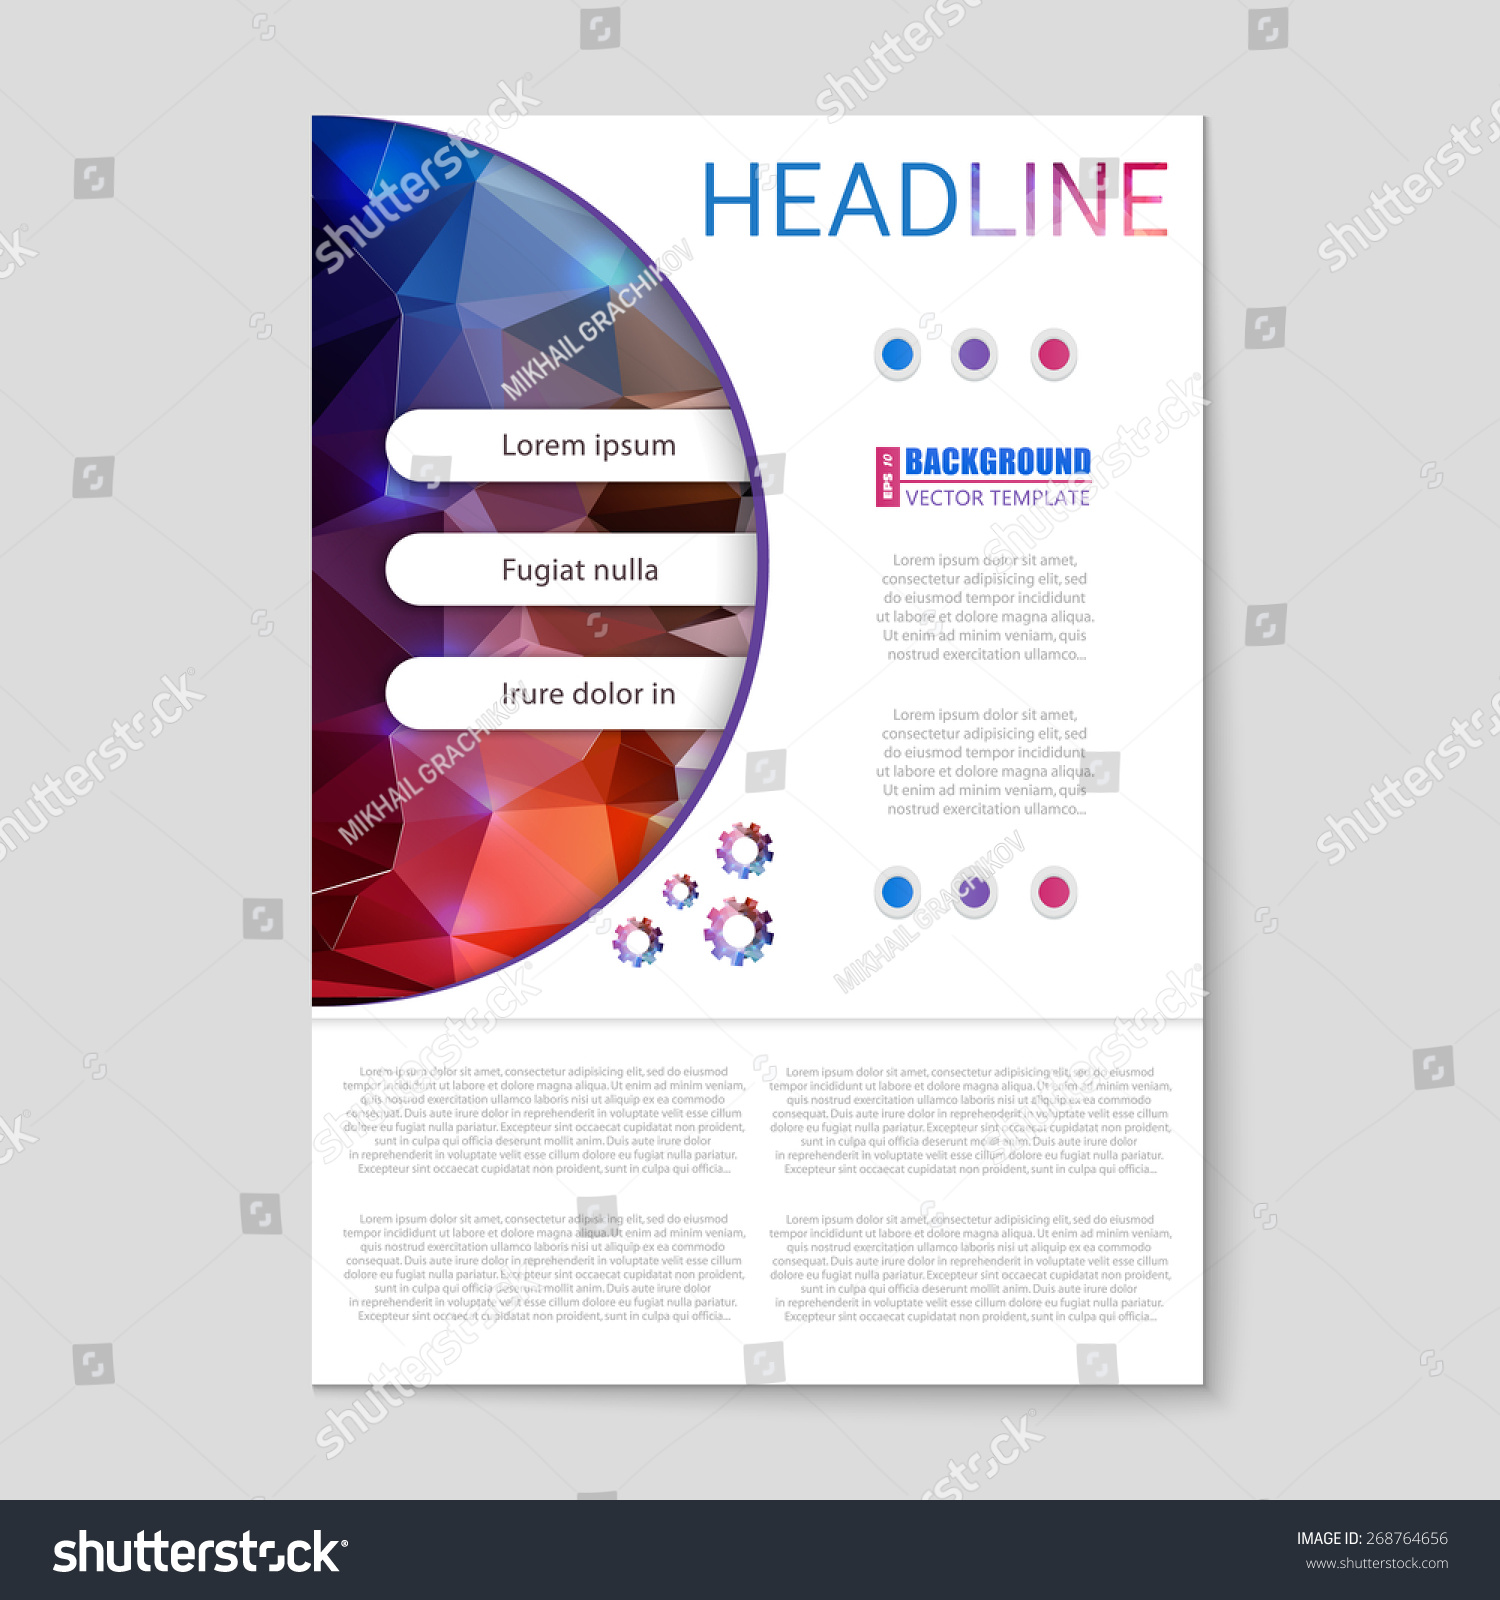 abstract creative concept vector booklet list stock vector abstract creative concept vector booklet list for web and mobile applications art template design